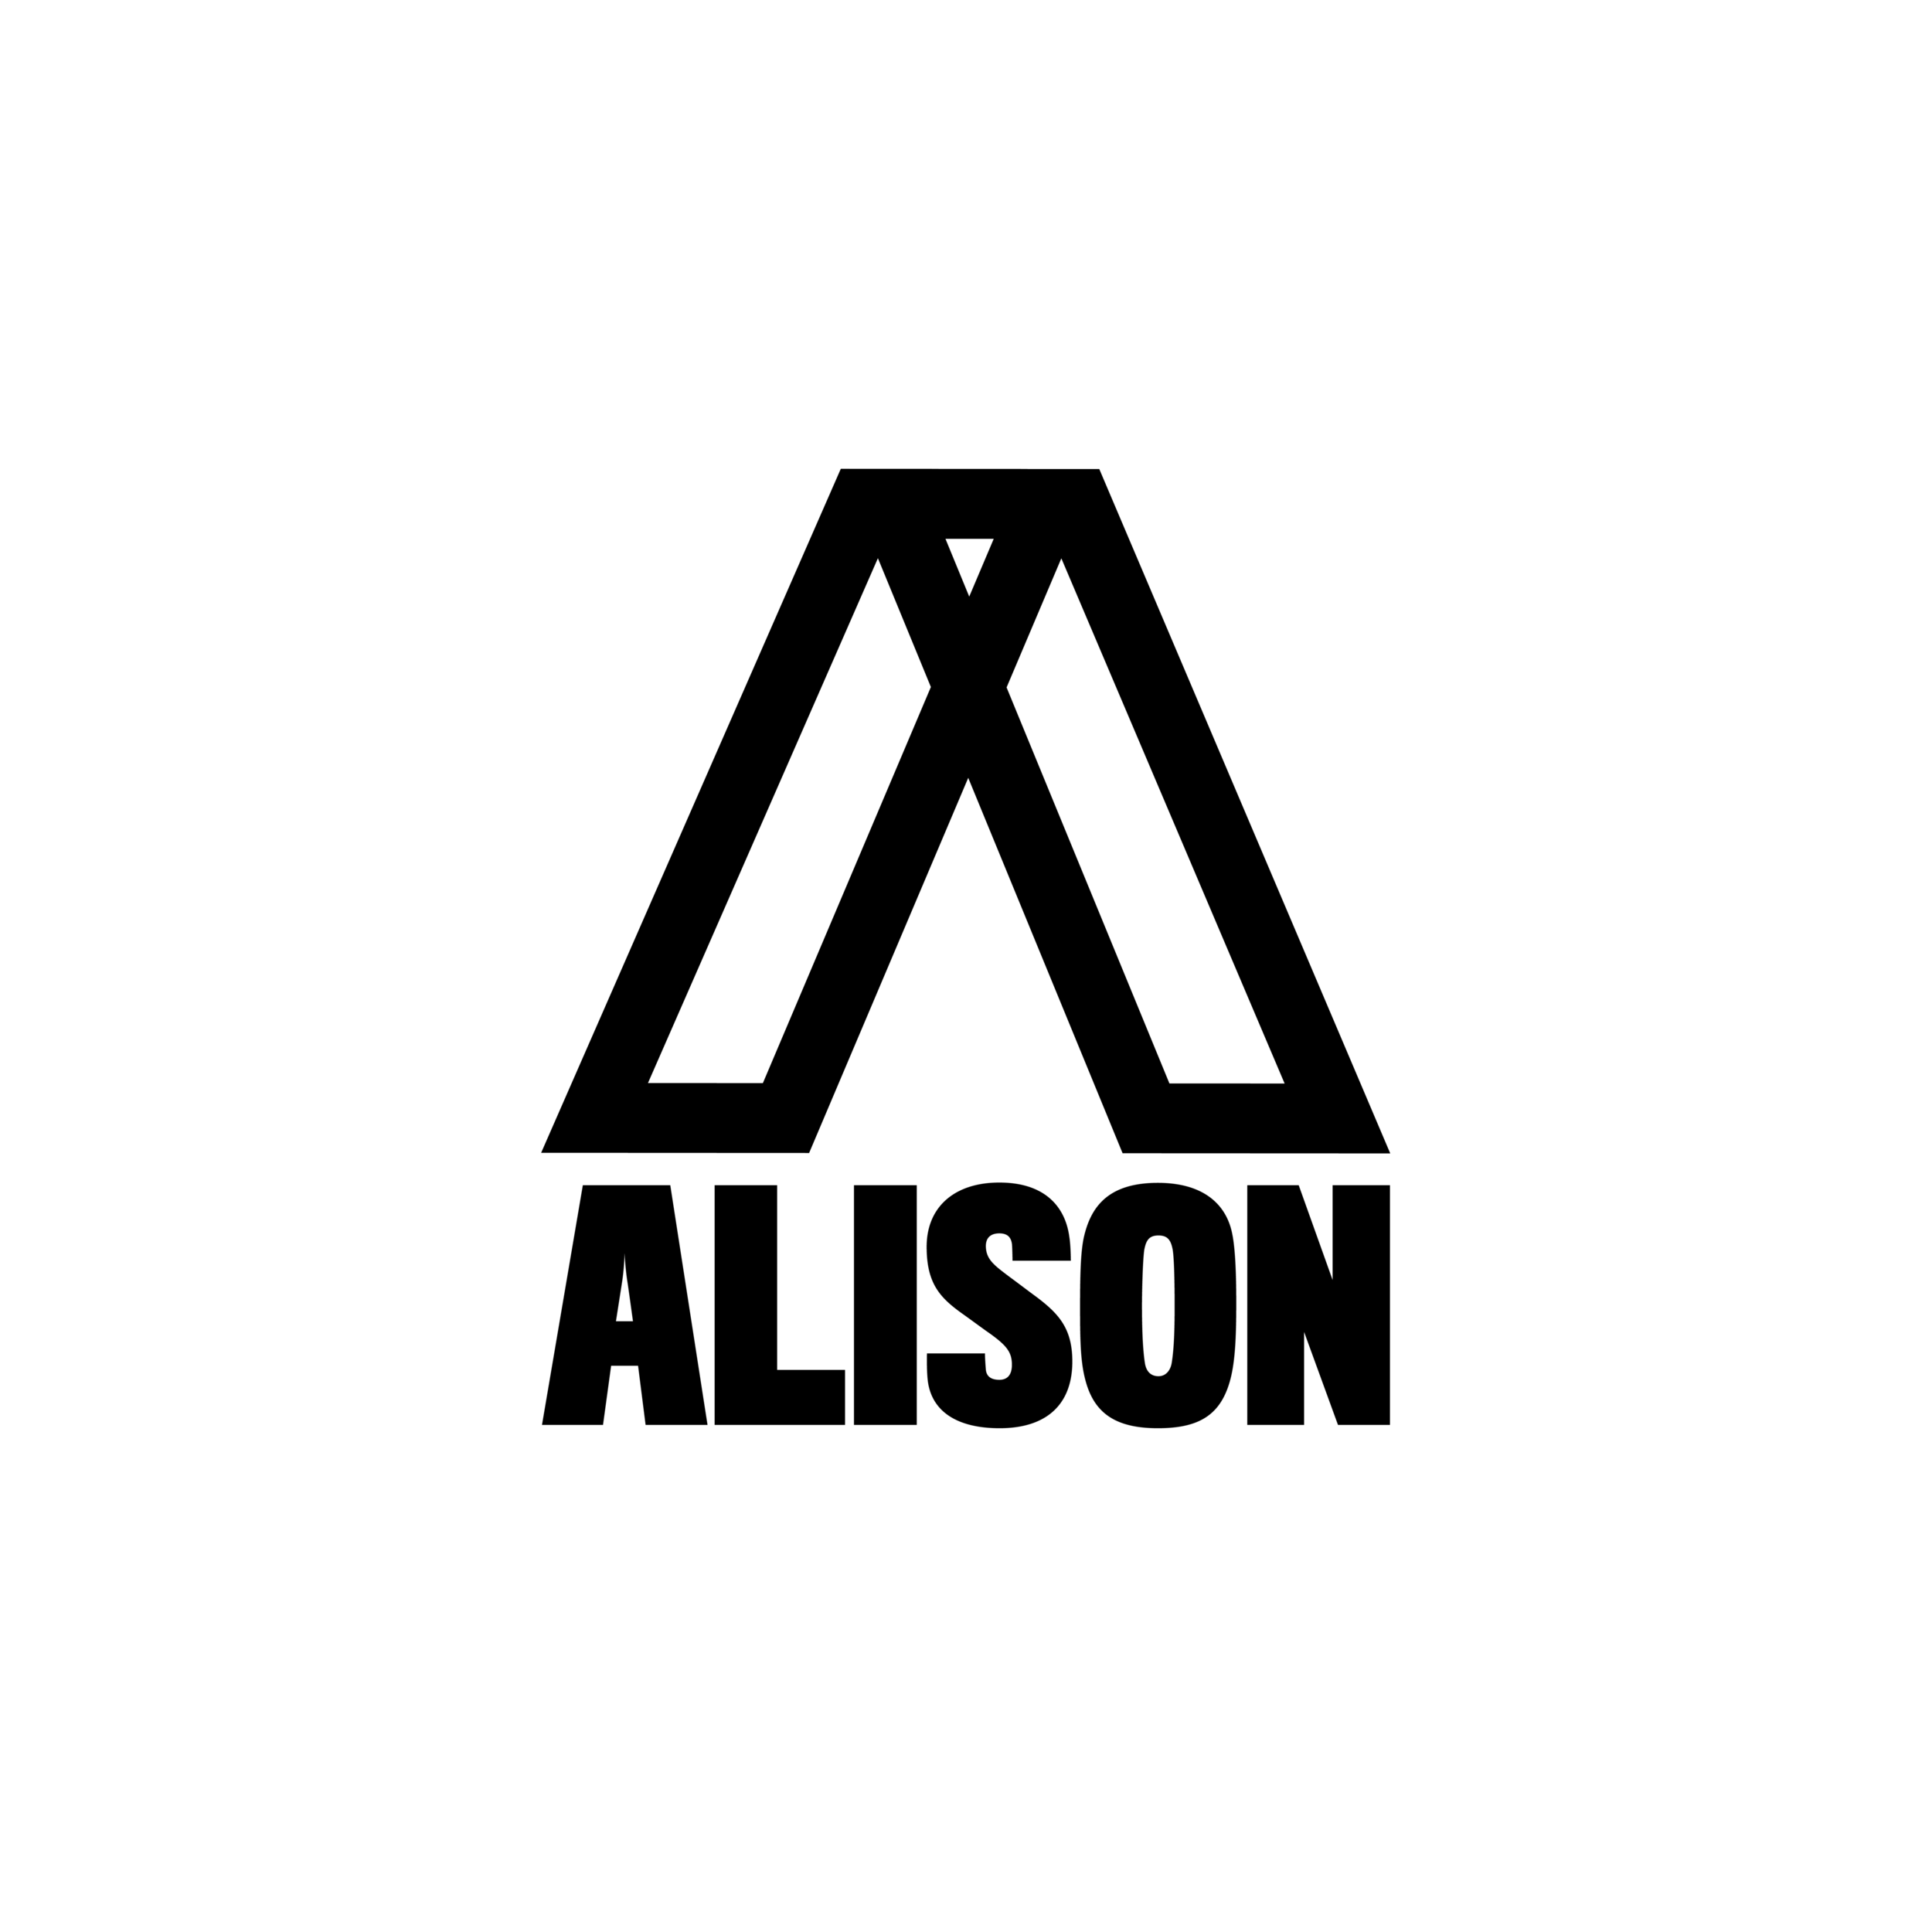 ALISON BW@4x.png